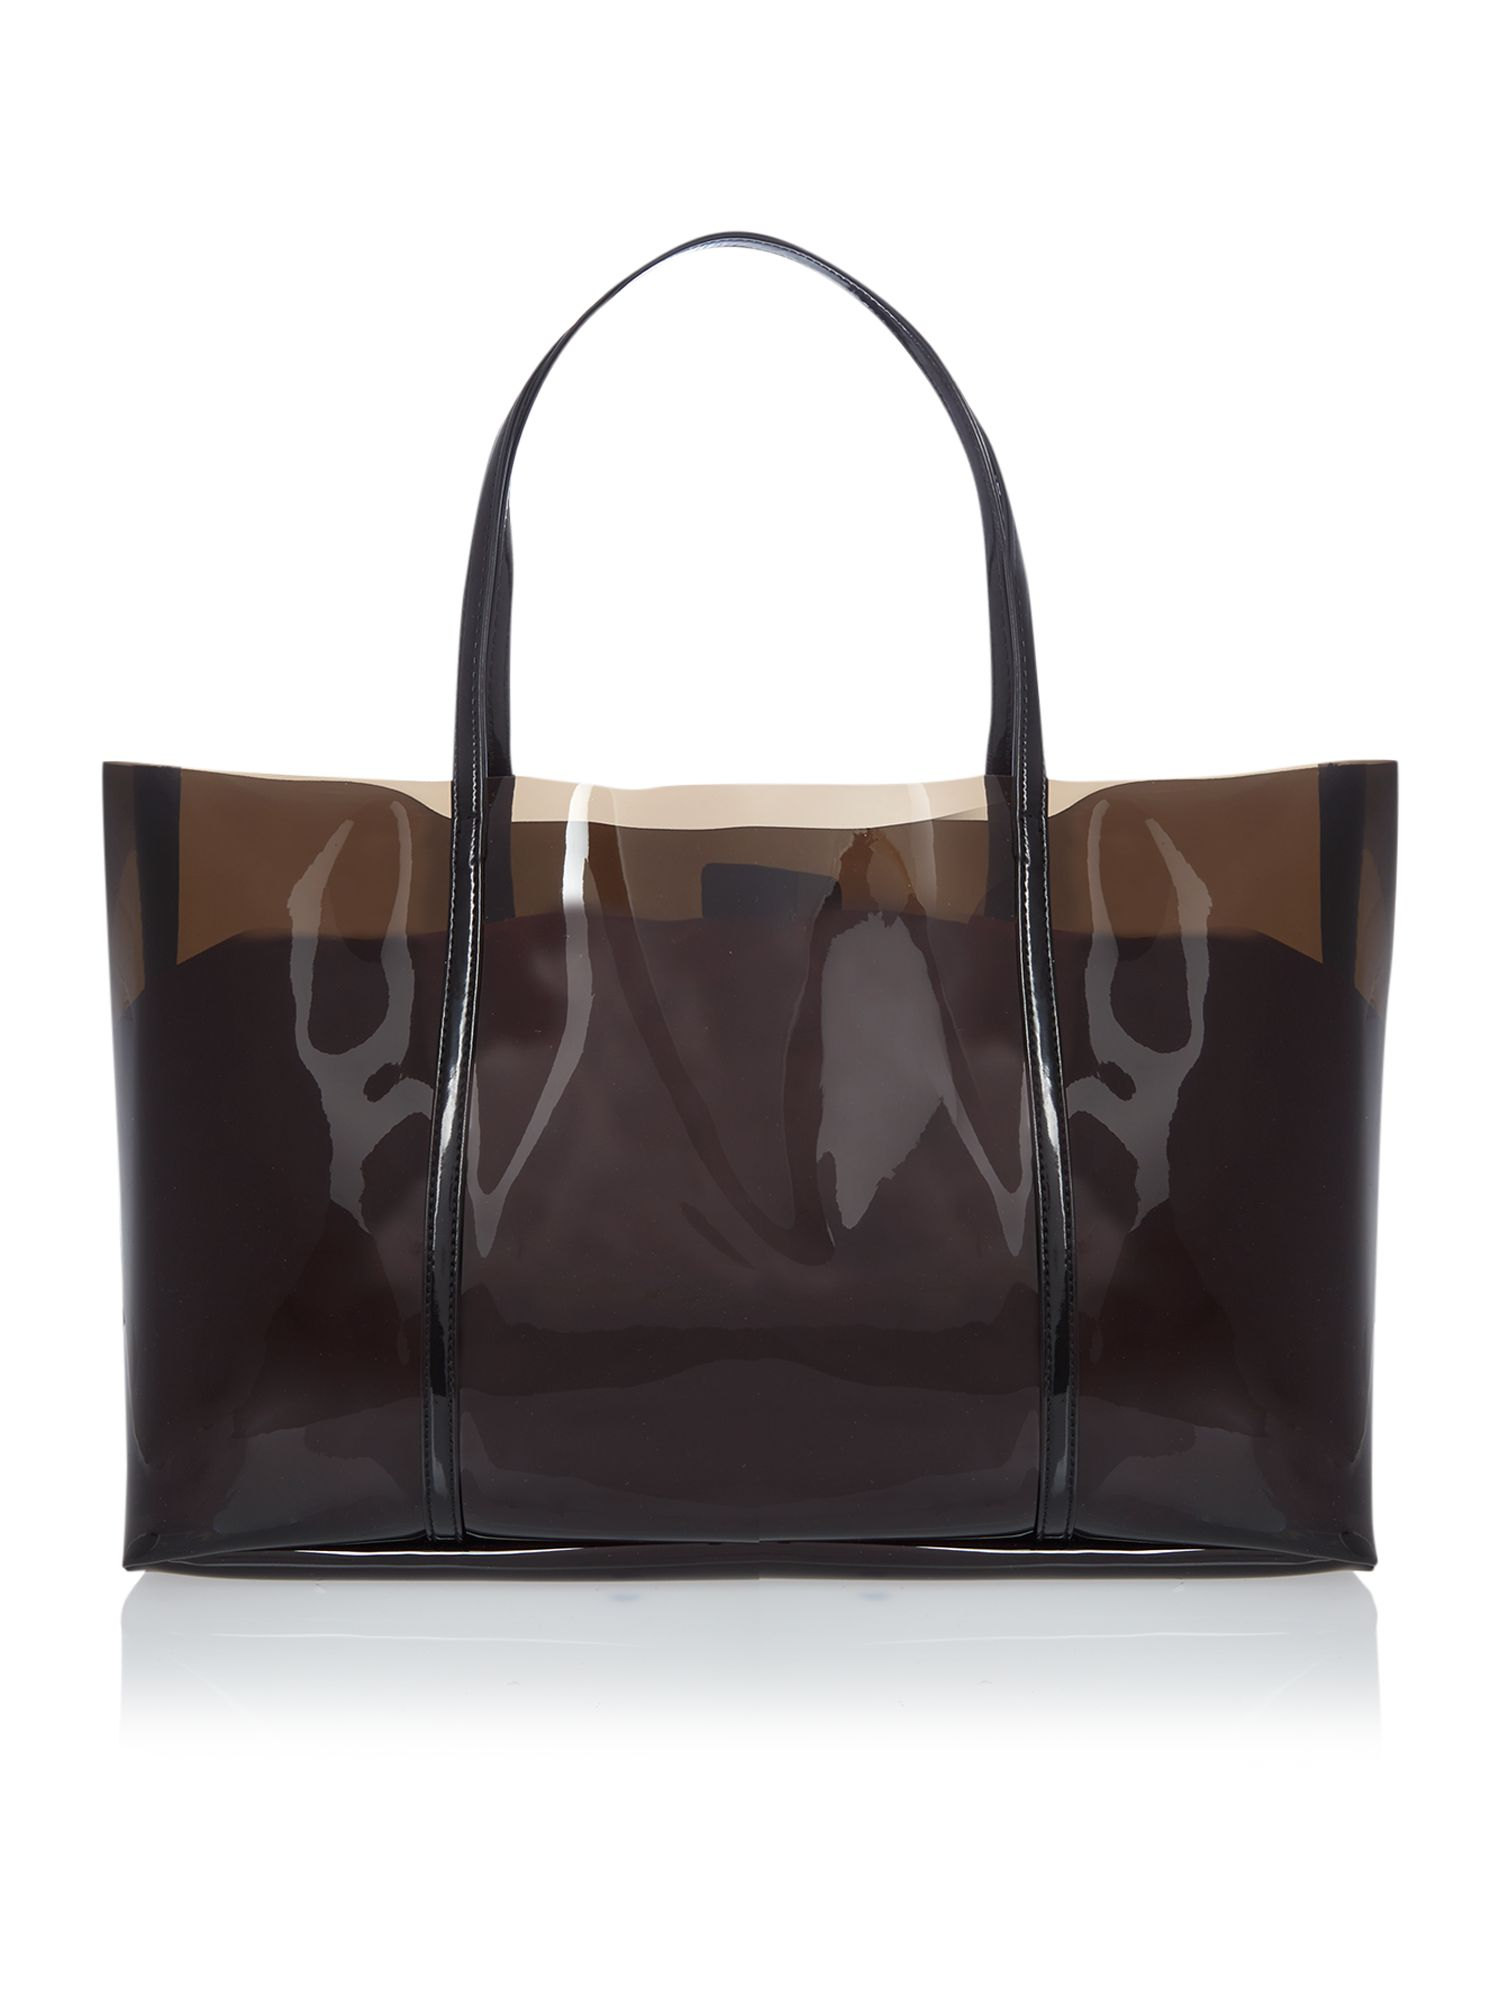 Carolina perspex jelly bag